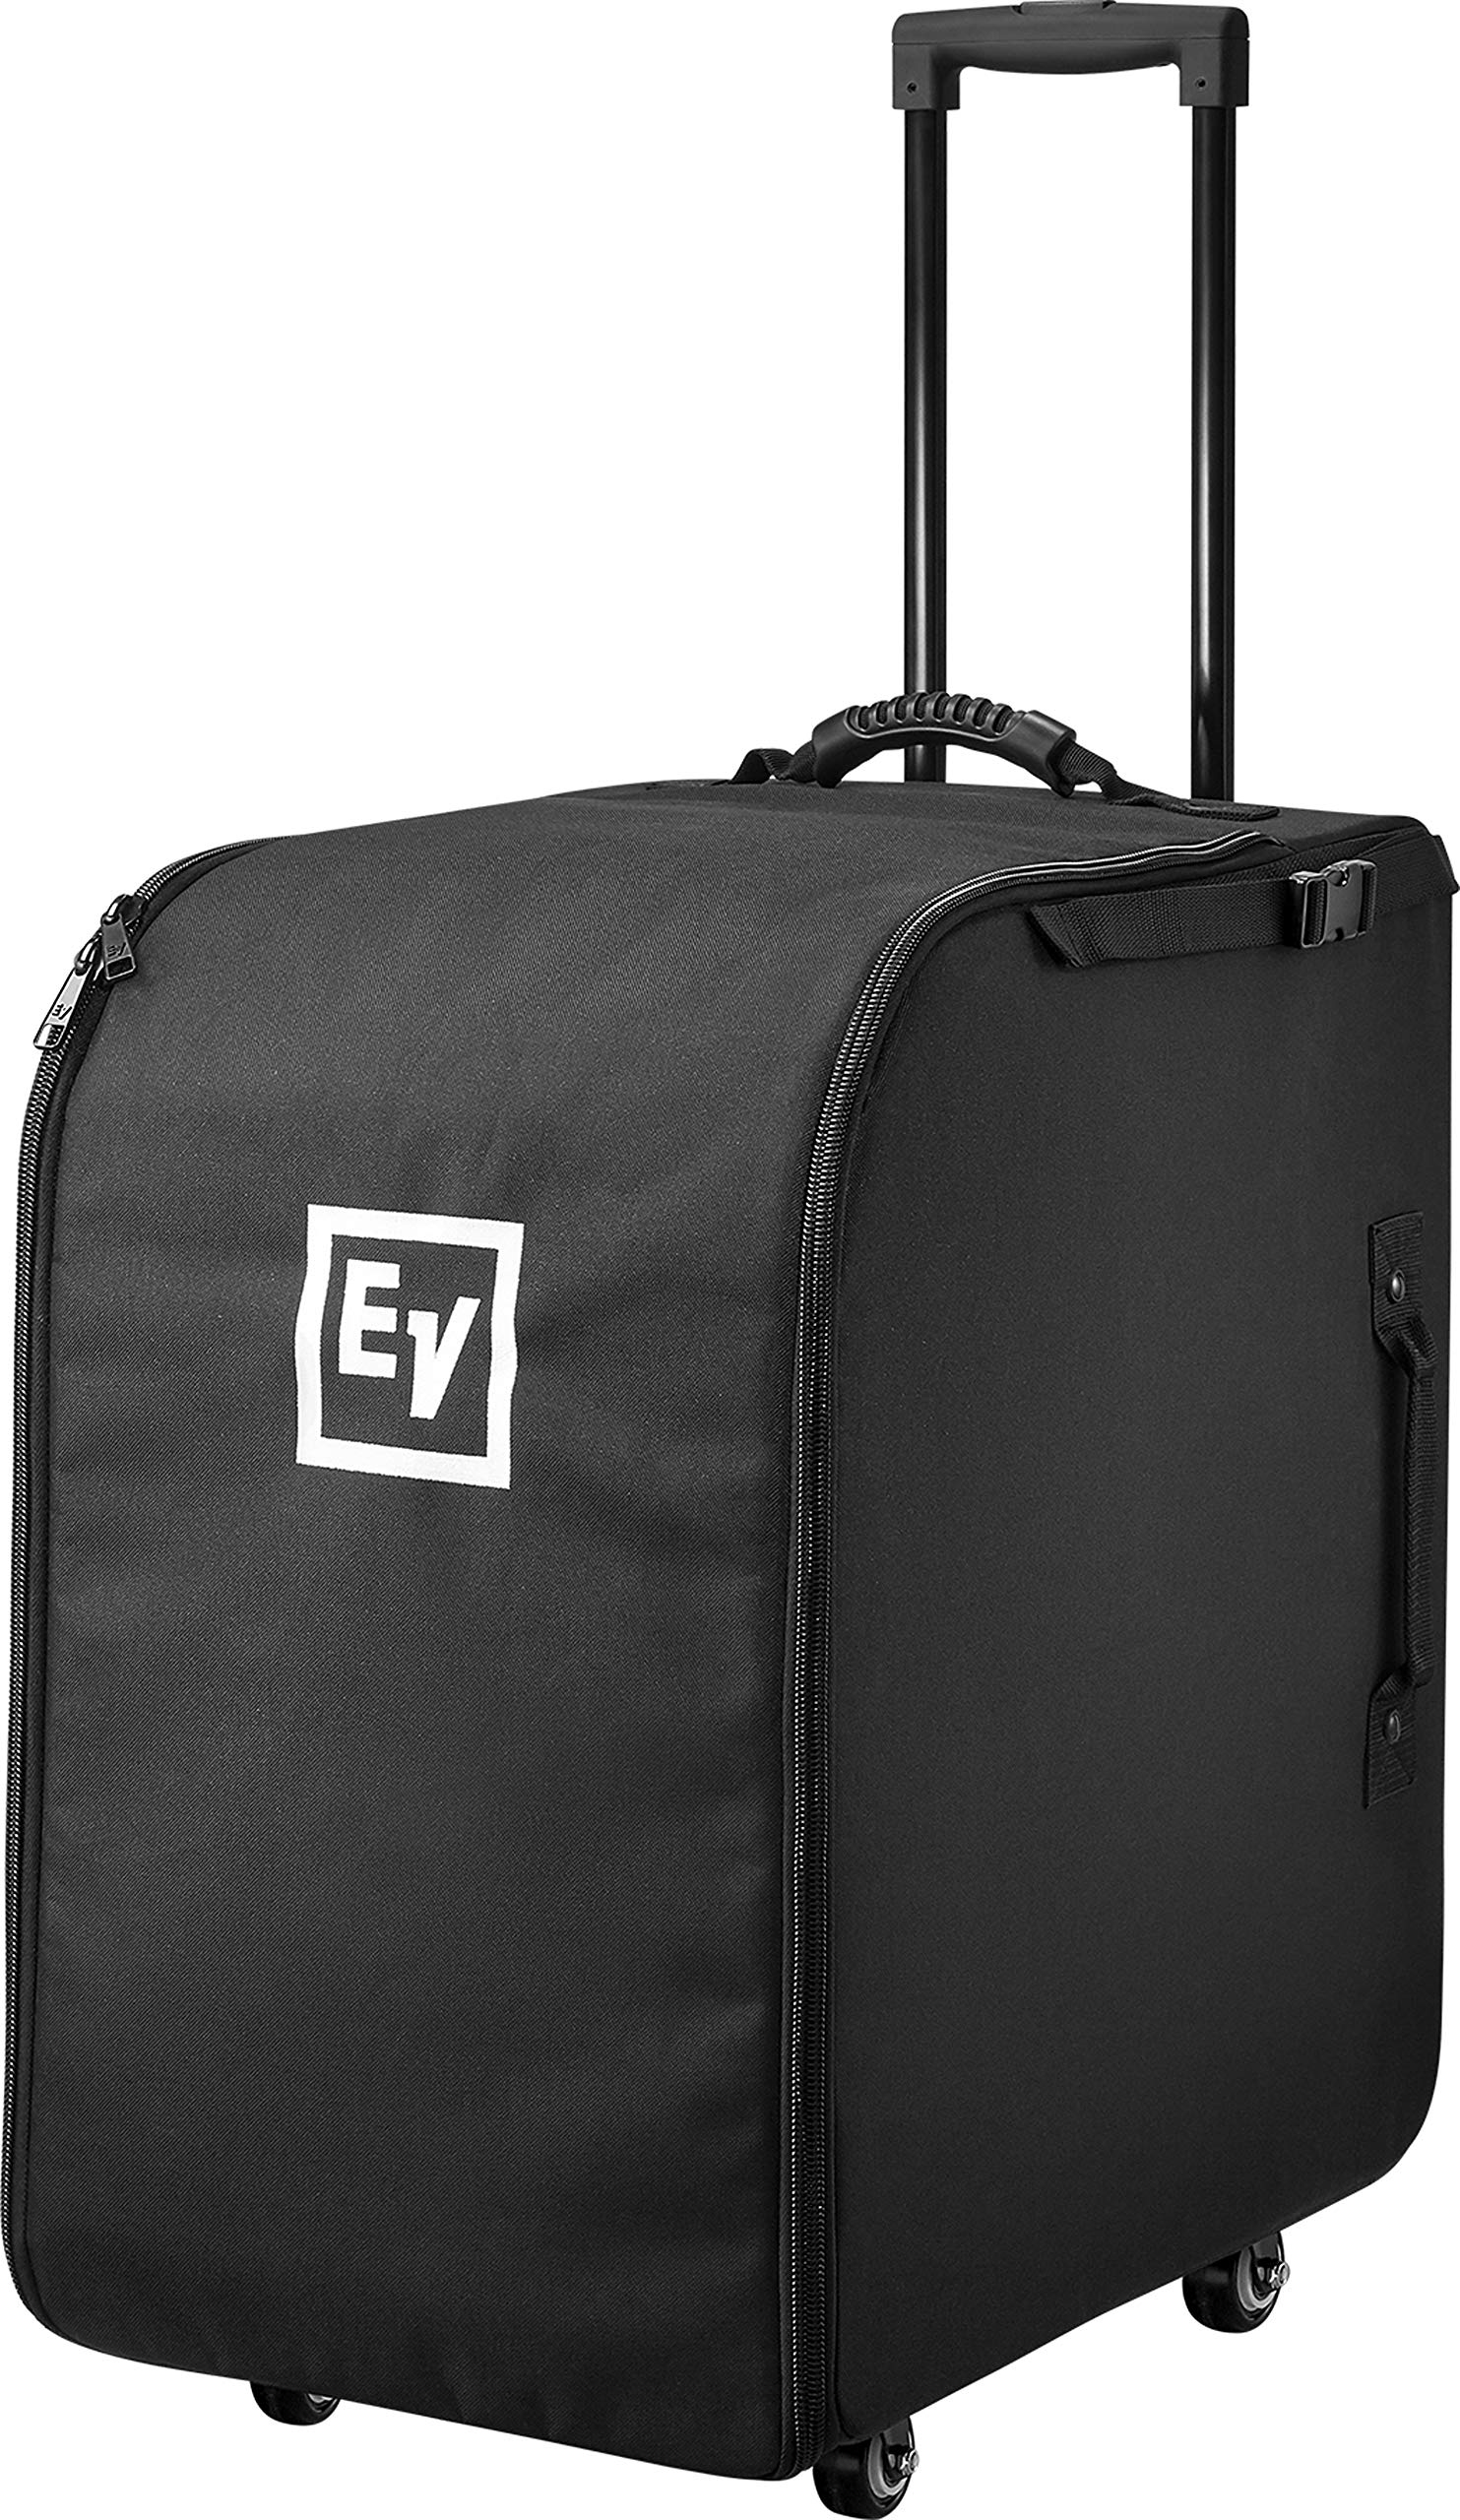 Electro-Voice Evolve 50 Column Speaker Carrying Case with Wheels